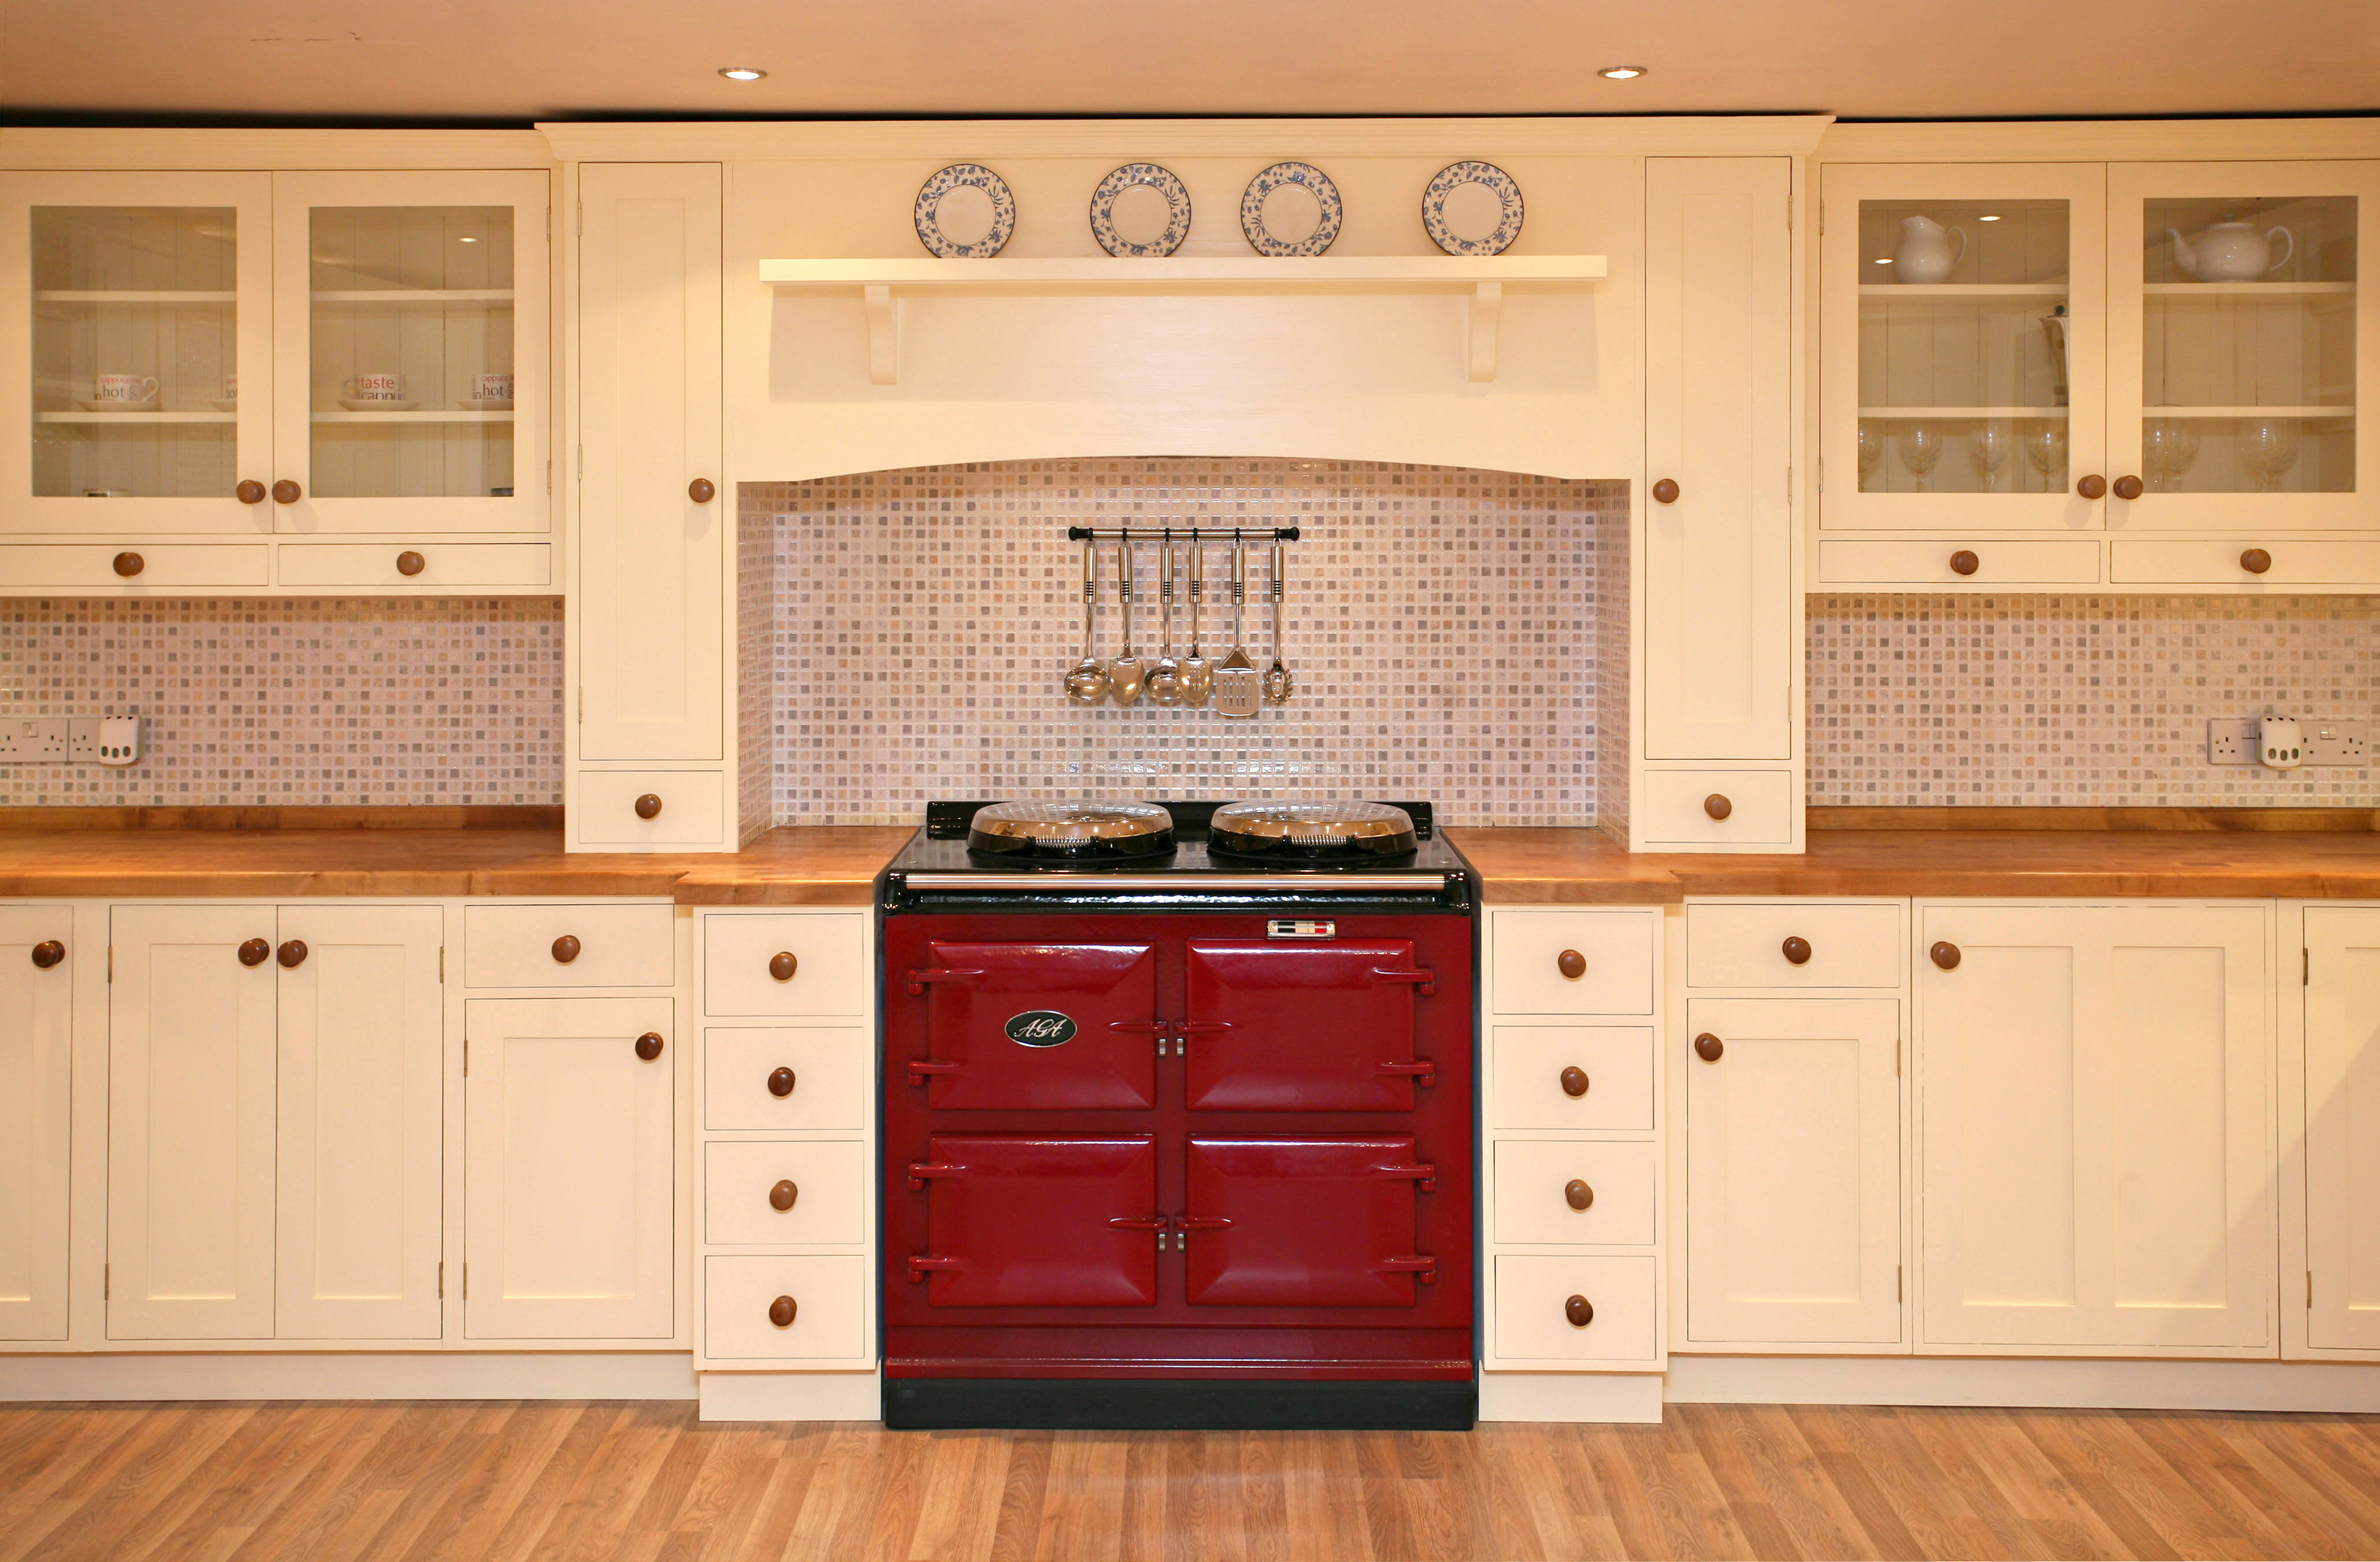 fitted kitchens kitchens solid wood bespoke furniture handmade kitchen designs warwickshire uk